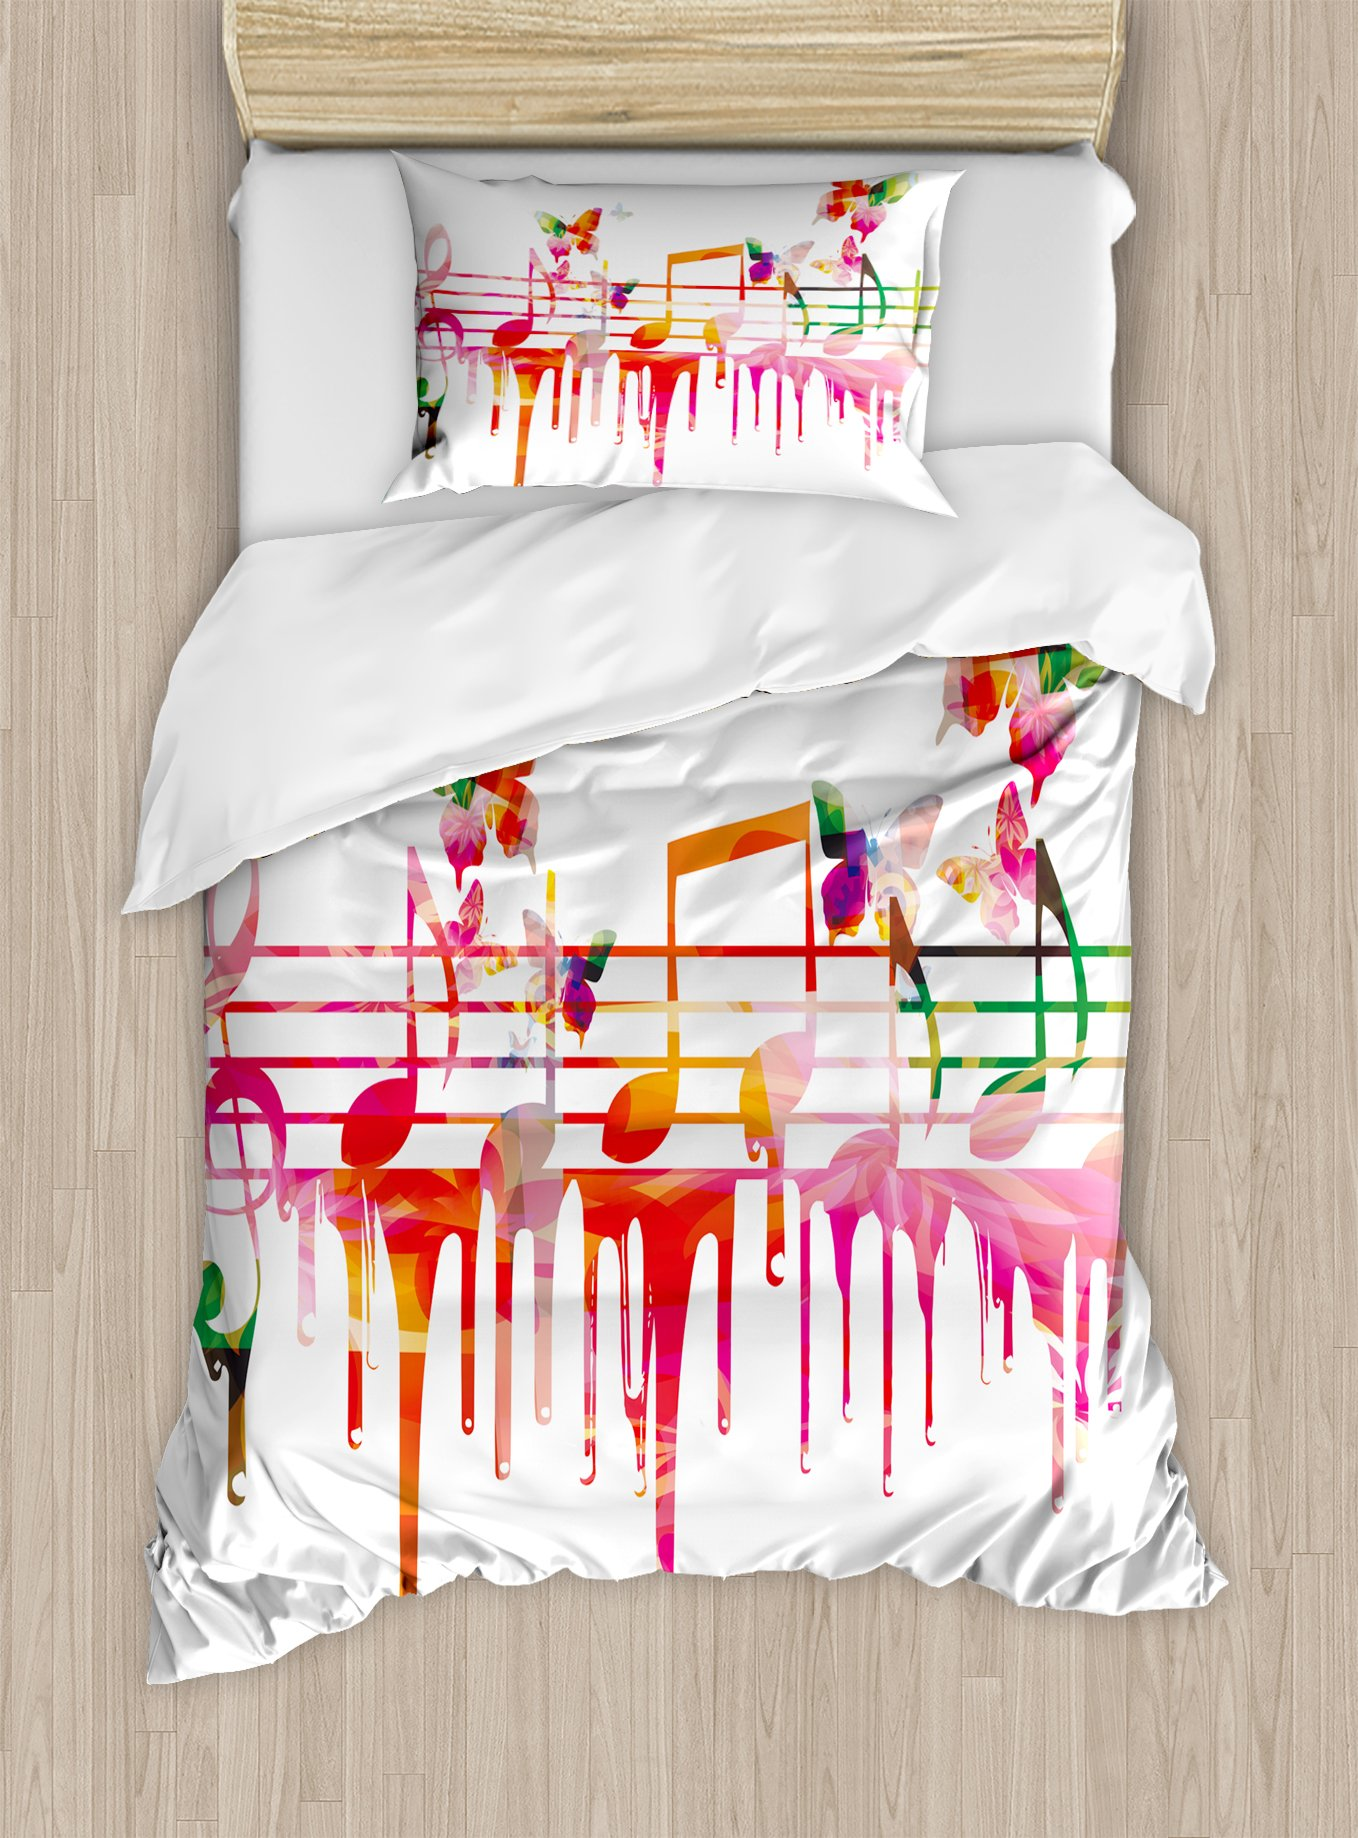 Music Decor Duvet Cover Set by Ambesonne, Colorful Artwork Music Notes Clef Composer Orchestra Decorative Classic, 2 Piece Bedding Set with 1 Pillow Sham, Twin / Twin XL Size